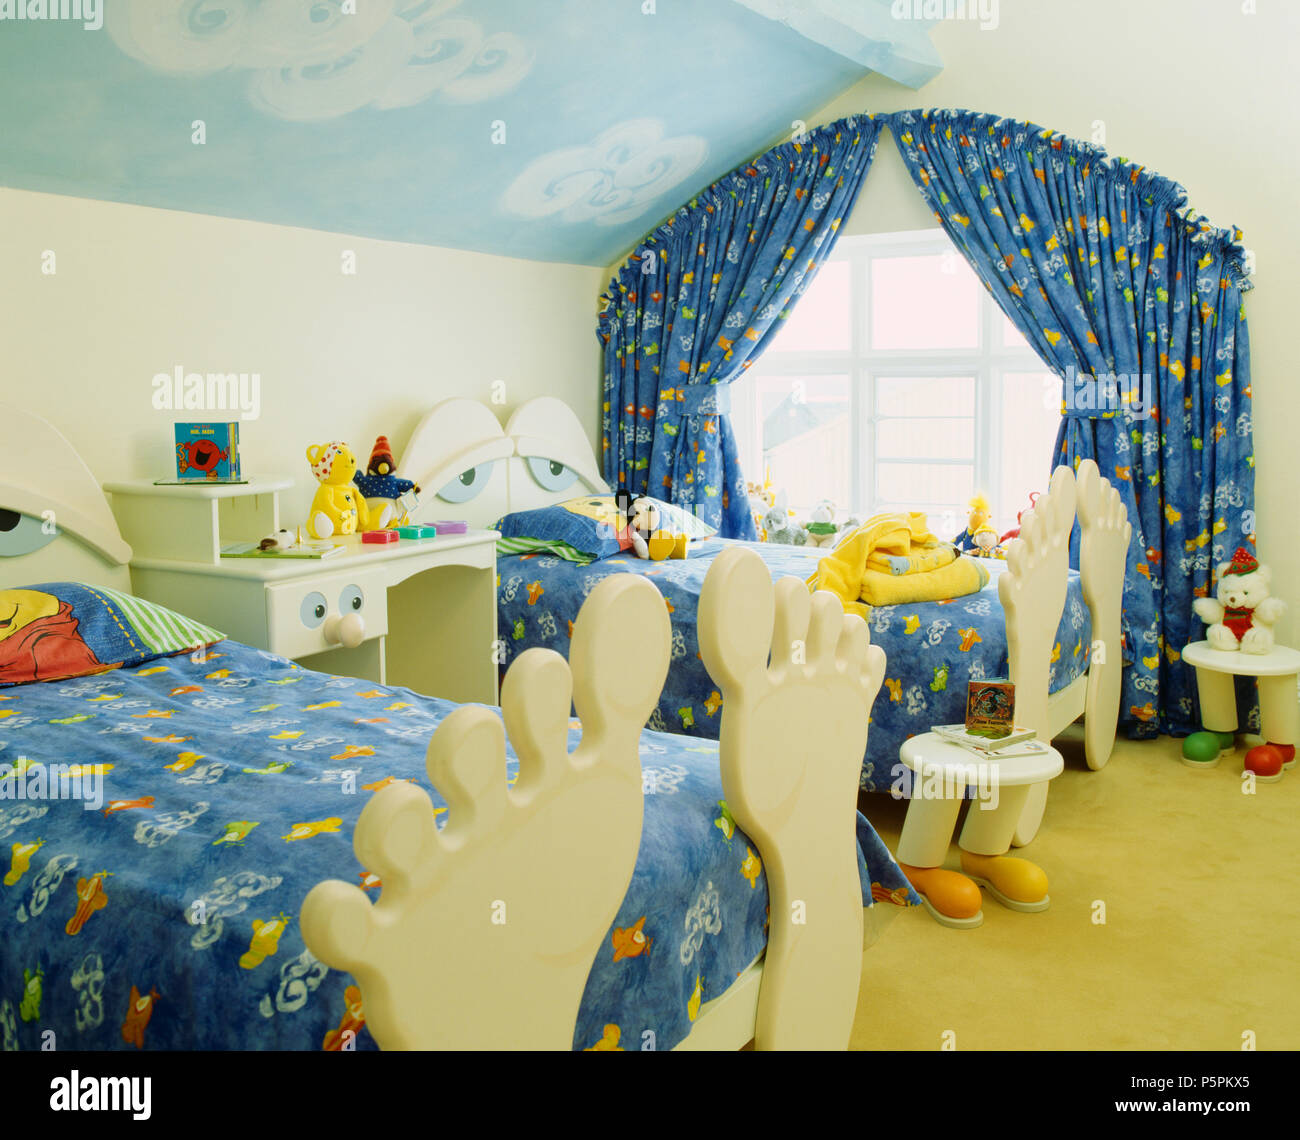 Patterned Blue Curtains At Window In Children S Attic Bedroom With Foot Shaped Footboards On Twin Beds Stock Photo Alamy